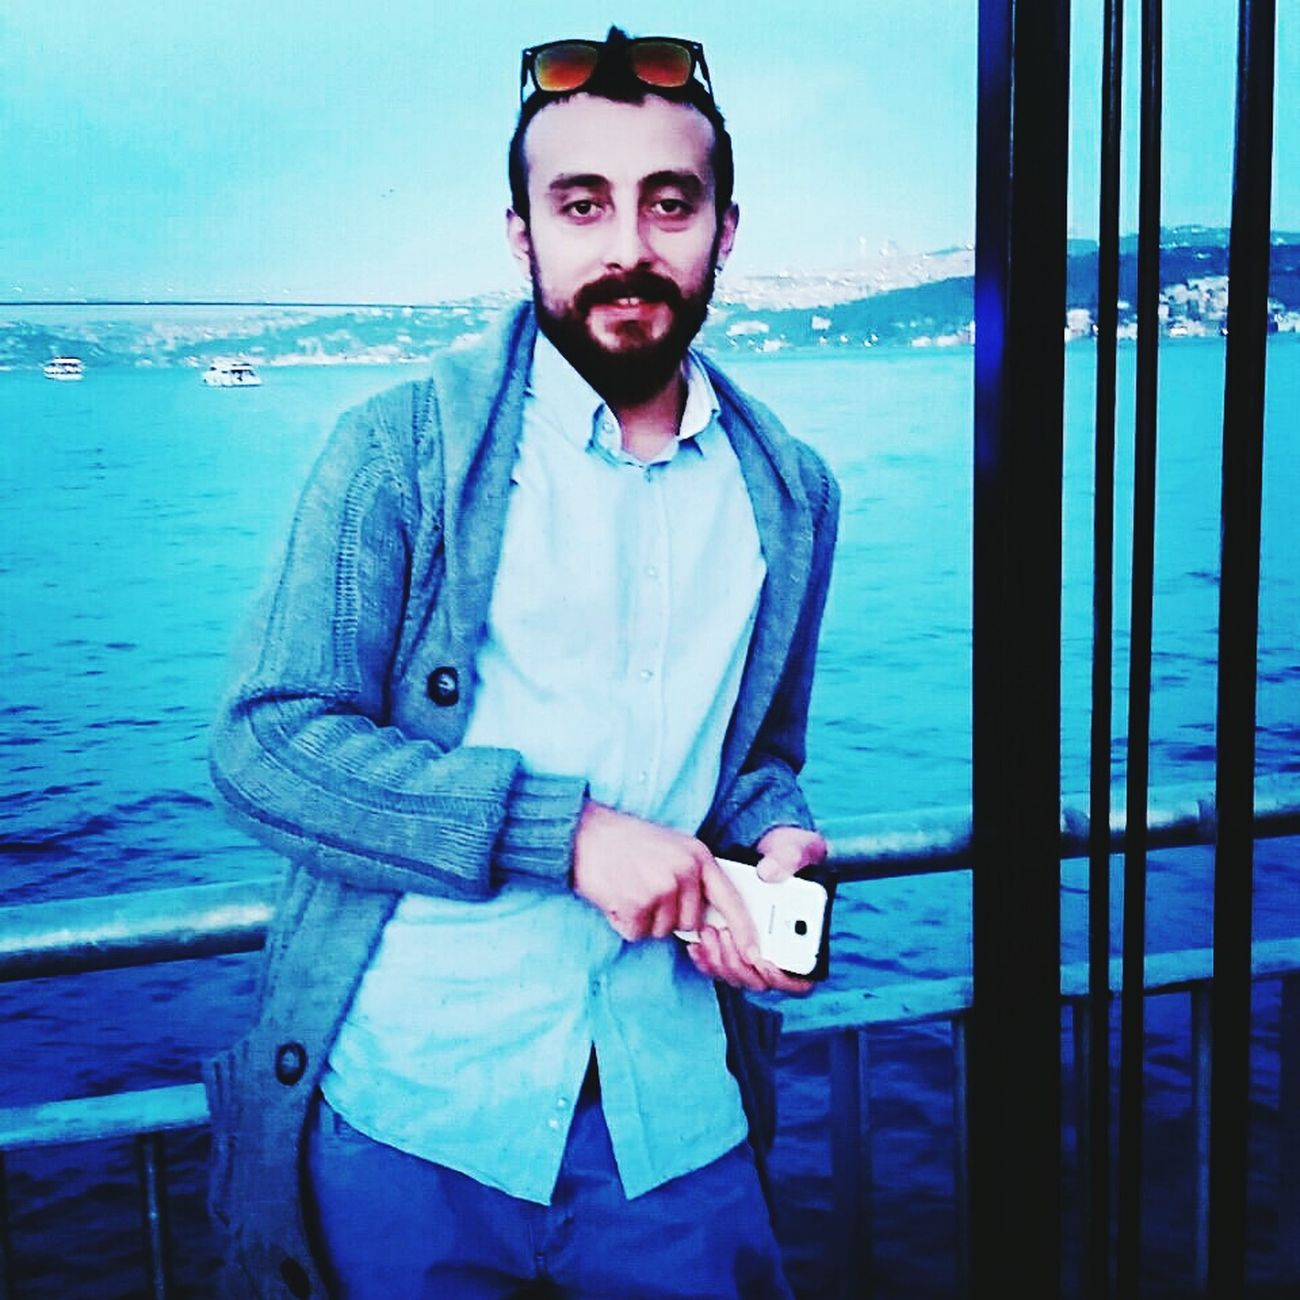 Turkey Like My Album Selfies Nice Day Istanbull Instagood Eyemphotography Likeyou People Watching EyeEm Taking Photos Model Istanbul Turkey Hi! Photography Nice Kollection Sugar BLUDAY Istagram Popular Photos TimesSquare Hello Beşiktaş Sahil